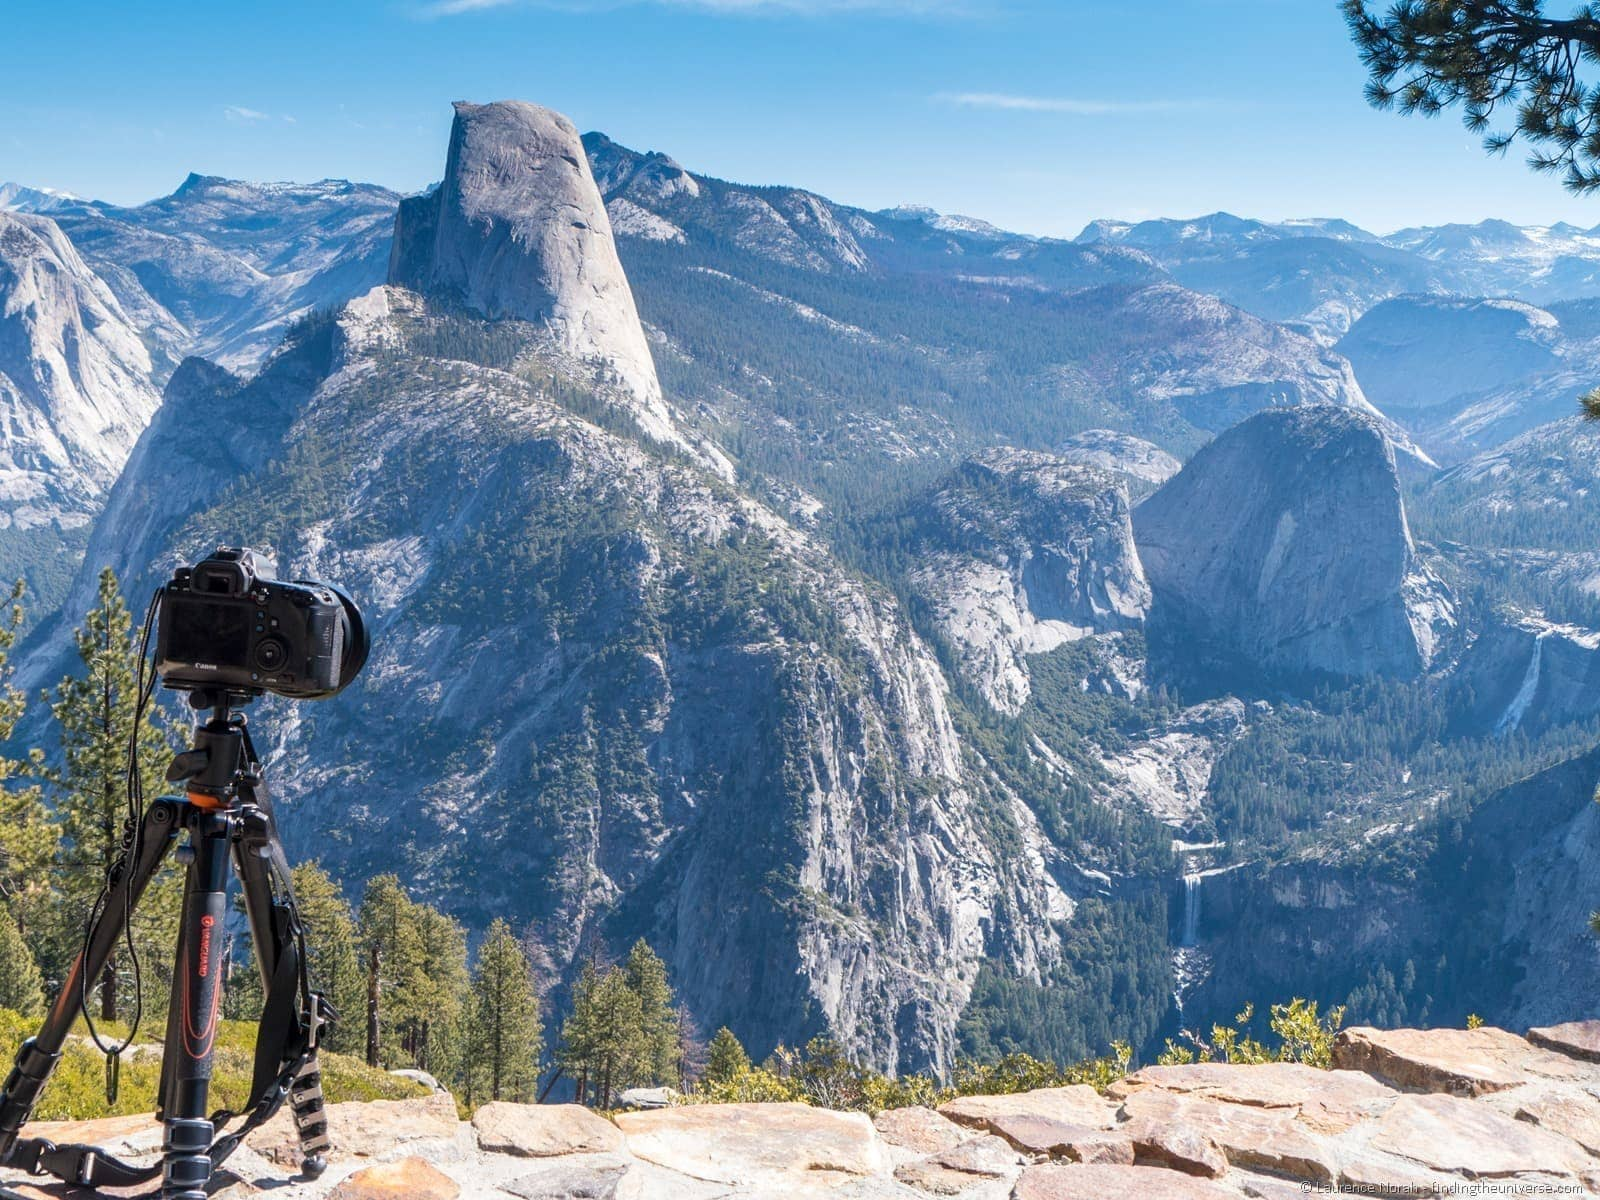 Vanguard tripod from Glacier point